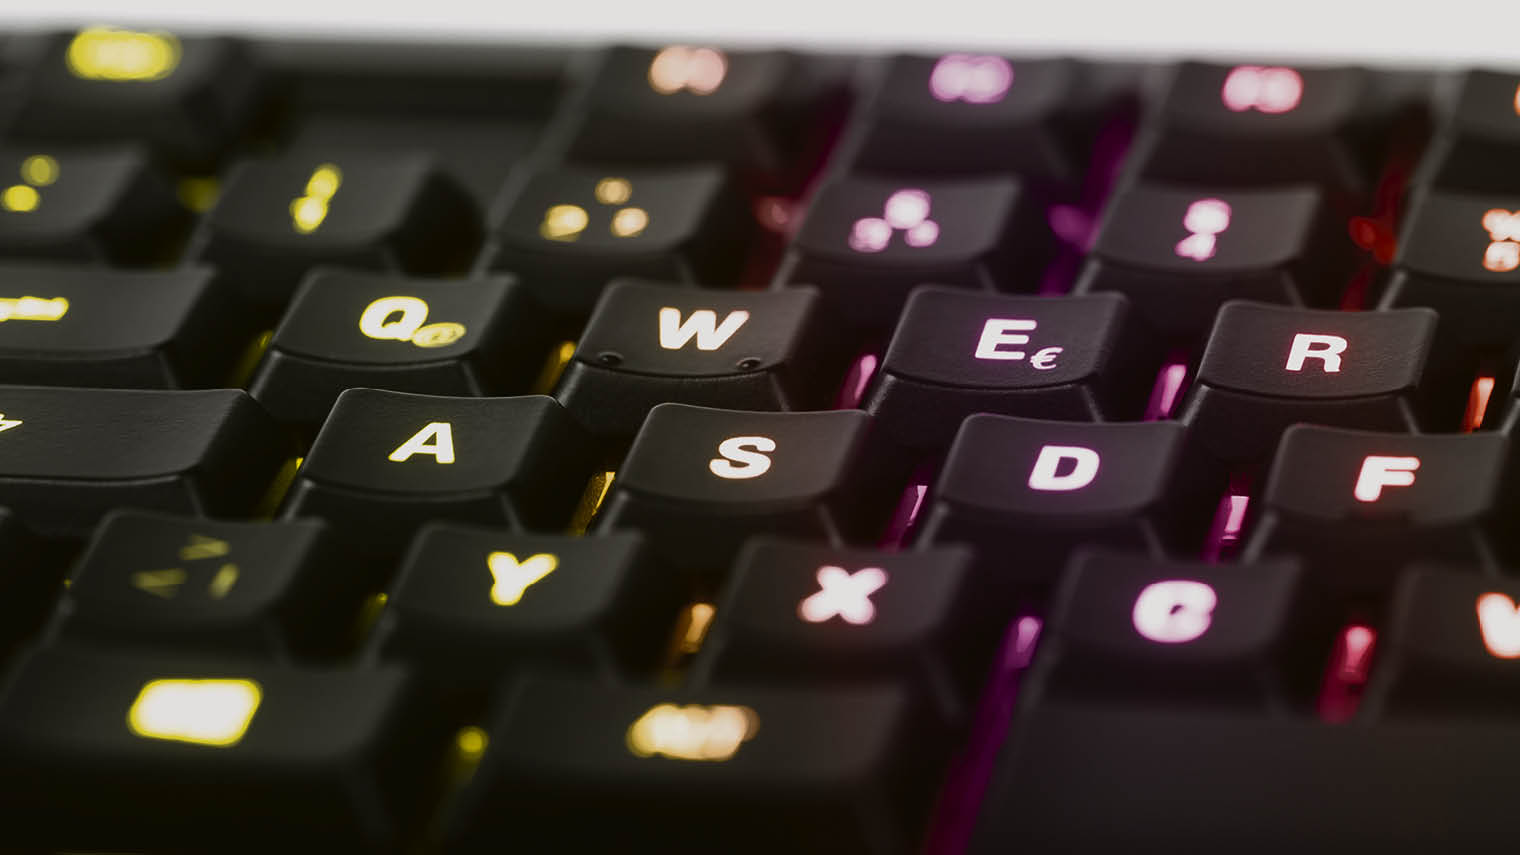 keyboards boost productivity